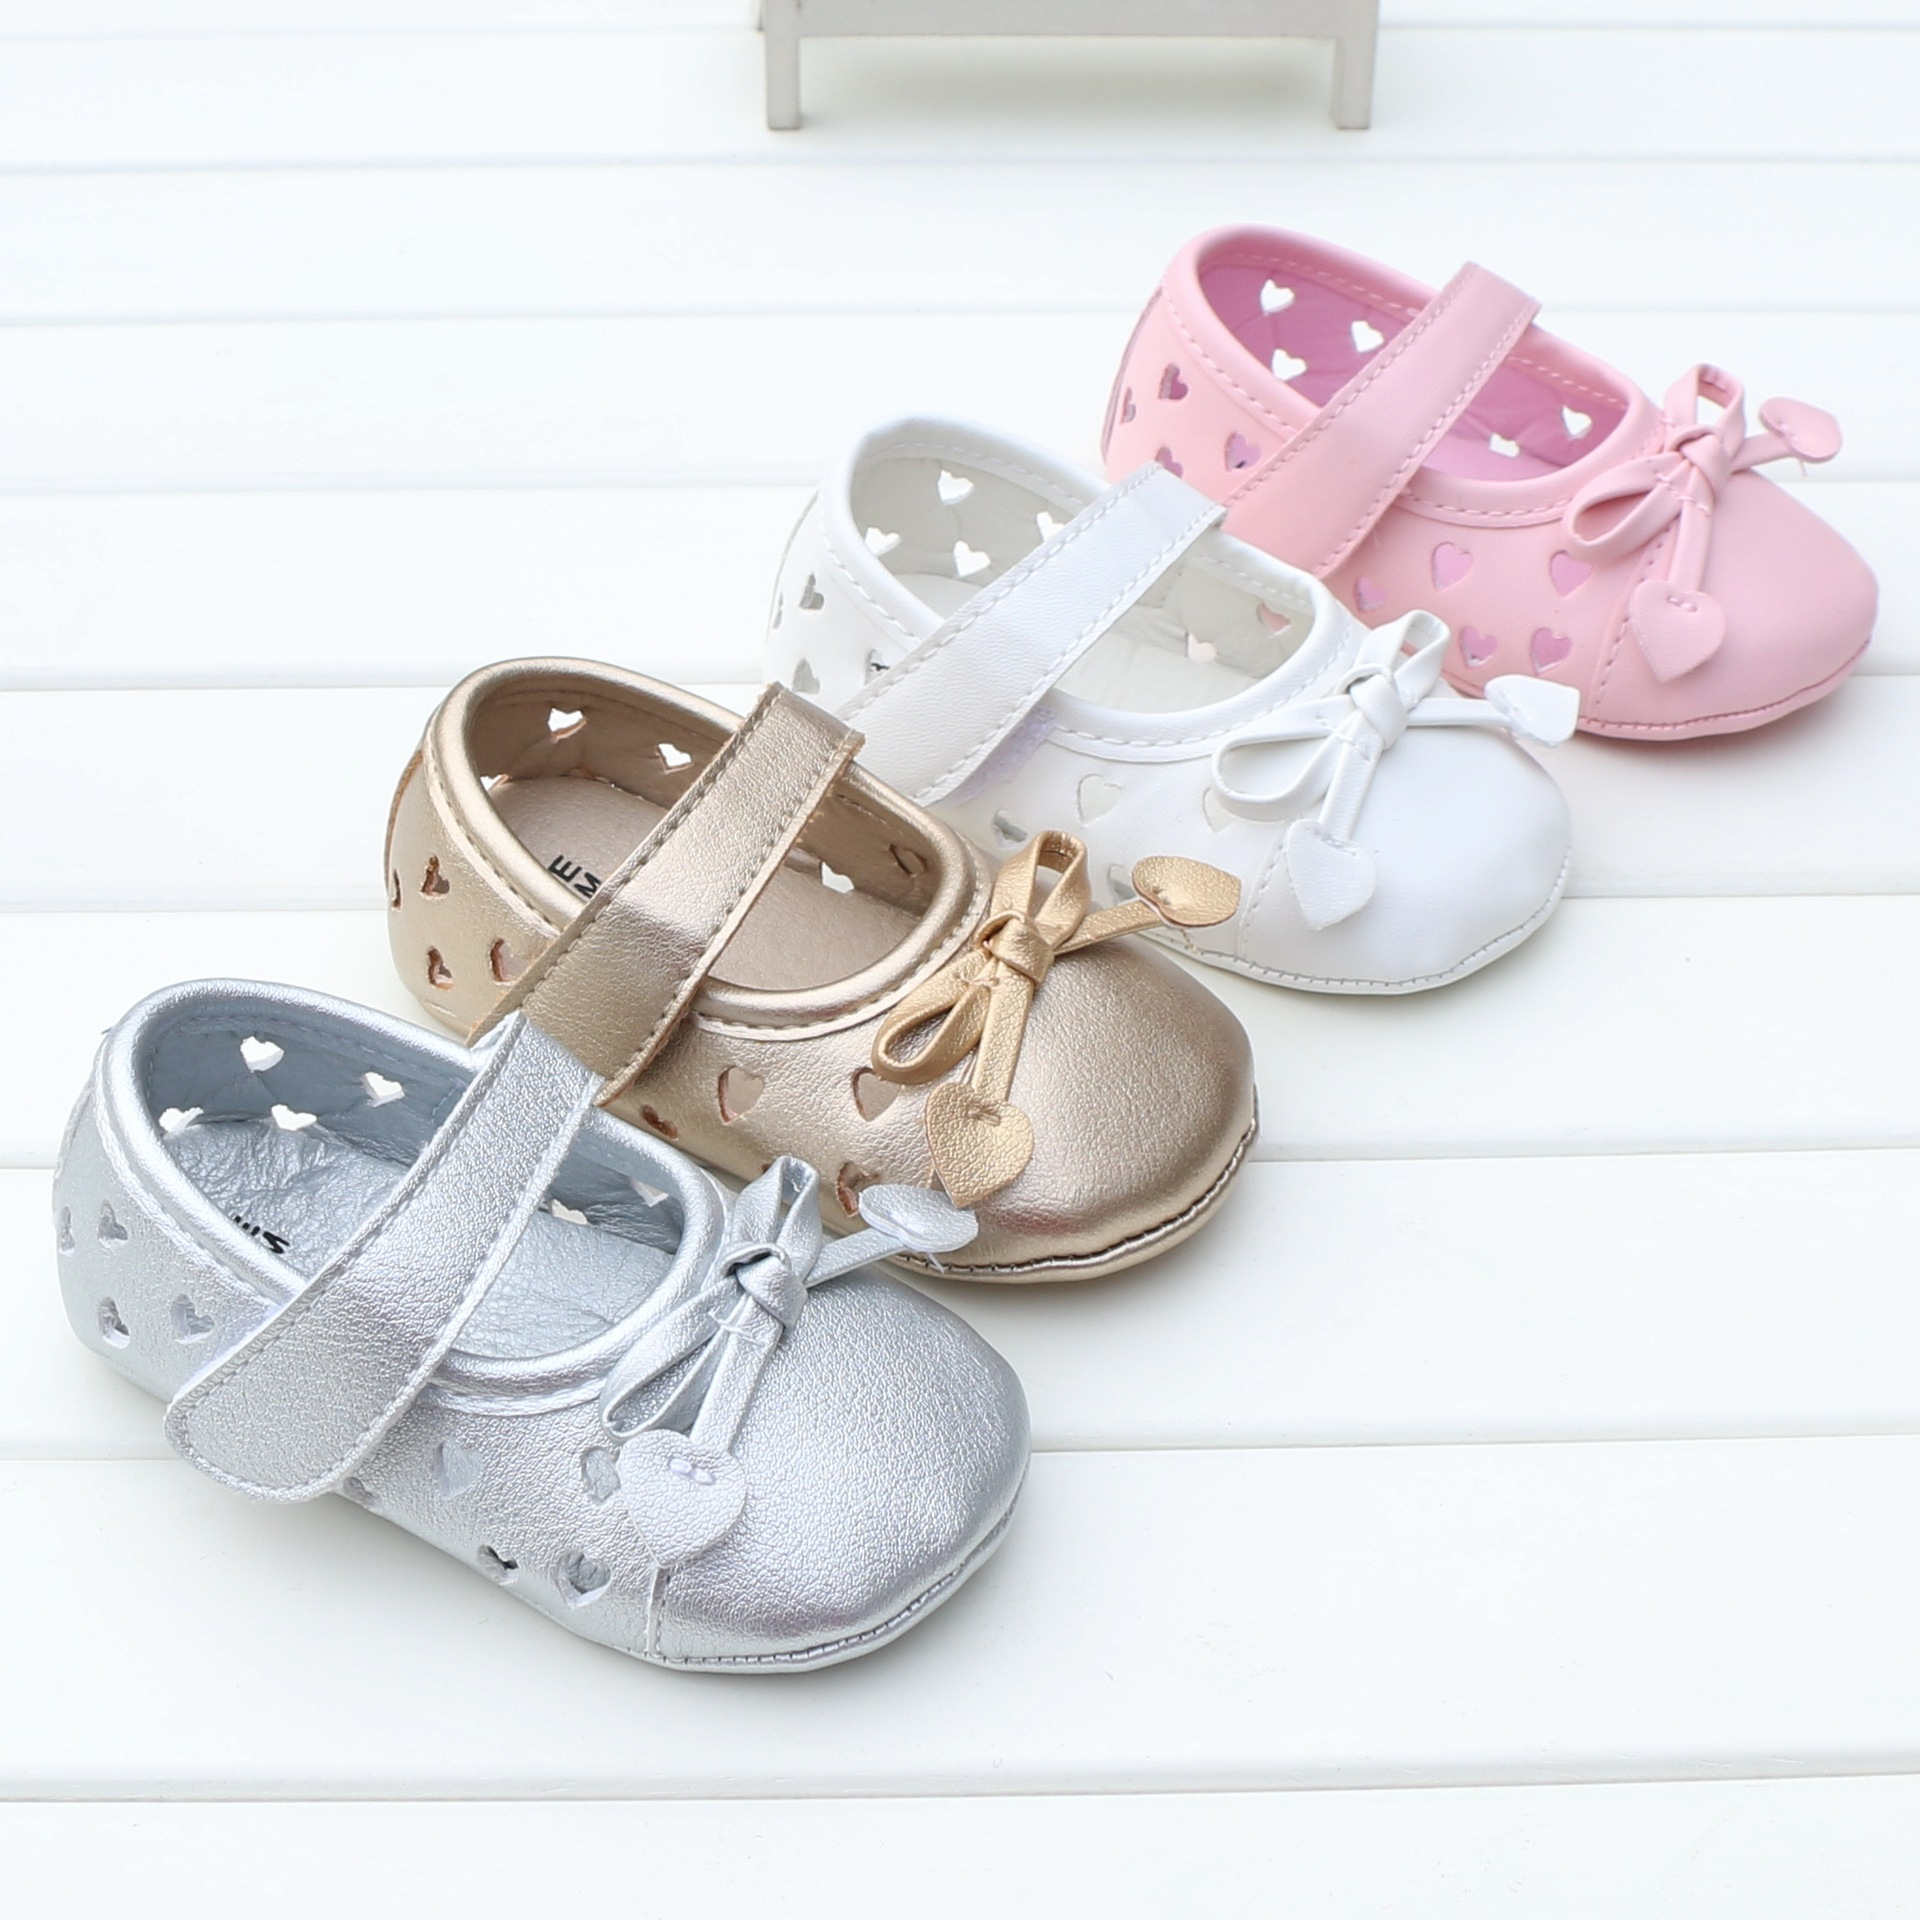 Baby First Walkers Baby Shoes Cute Soft Bottom Pu Non-slip Toddler Shoes for Baby Girls ...